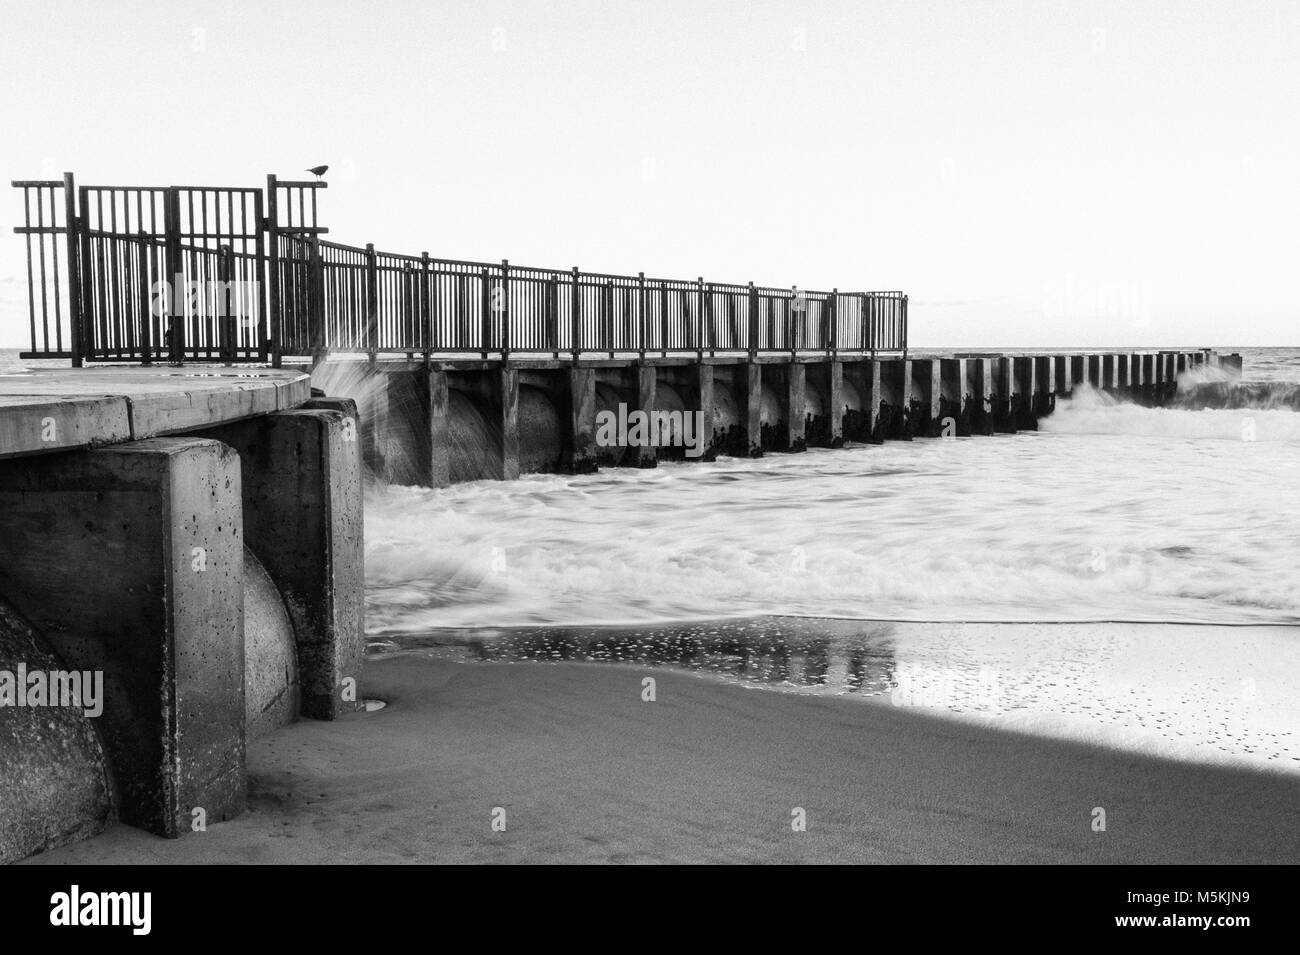 Black and White Photograph of the McGurk Beach Jetty at sunrise in Toes Beach, Playa Del Rey, CA. Stock Photo